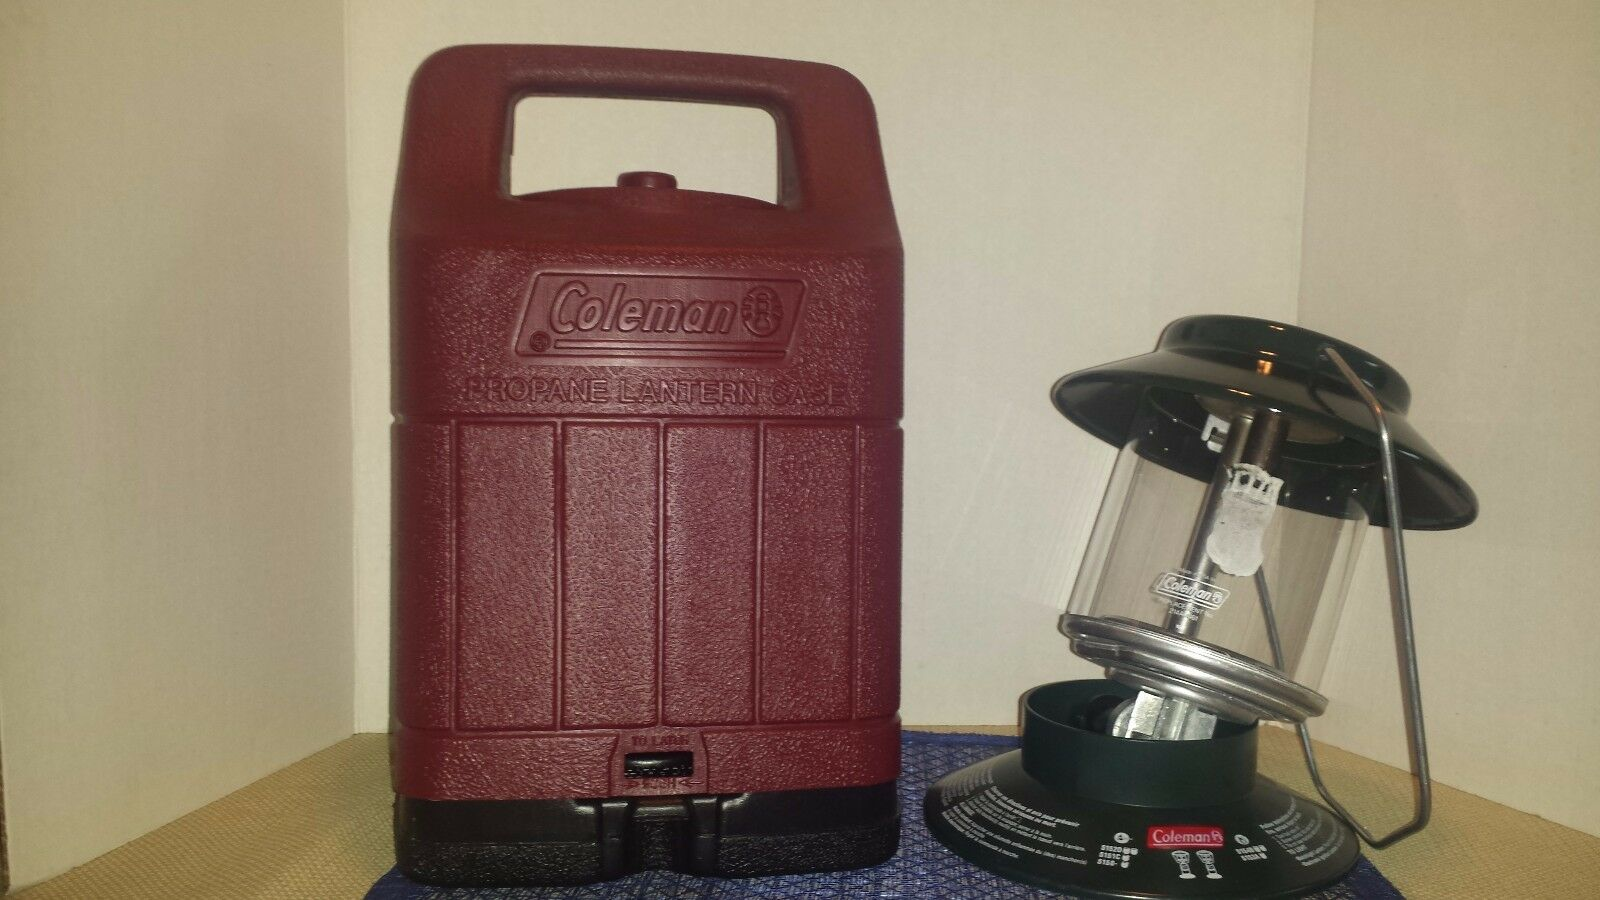 COLEMAN ONE MANTLE 03 99 PROPANE LANTERN MODEL  5151 W HARDSHELL CASE  sale with high discount